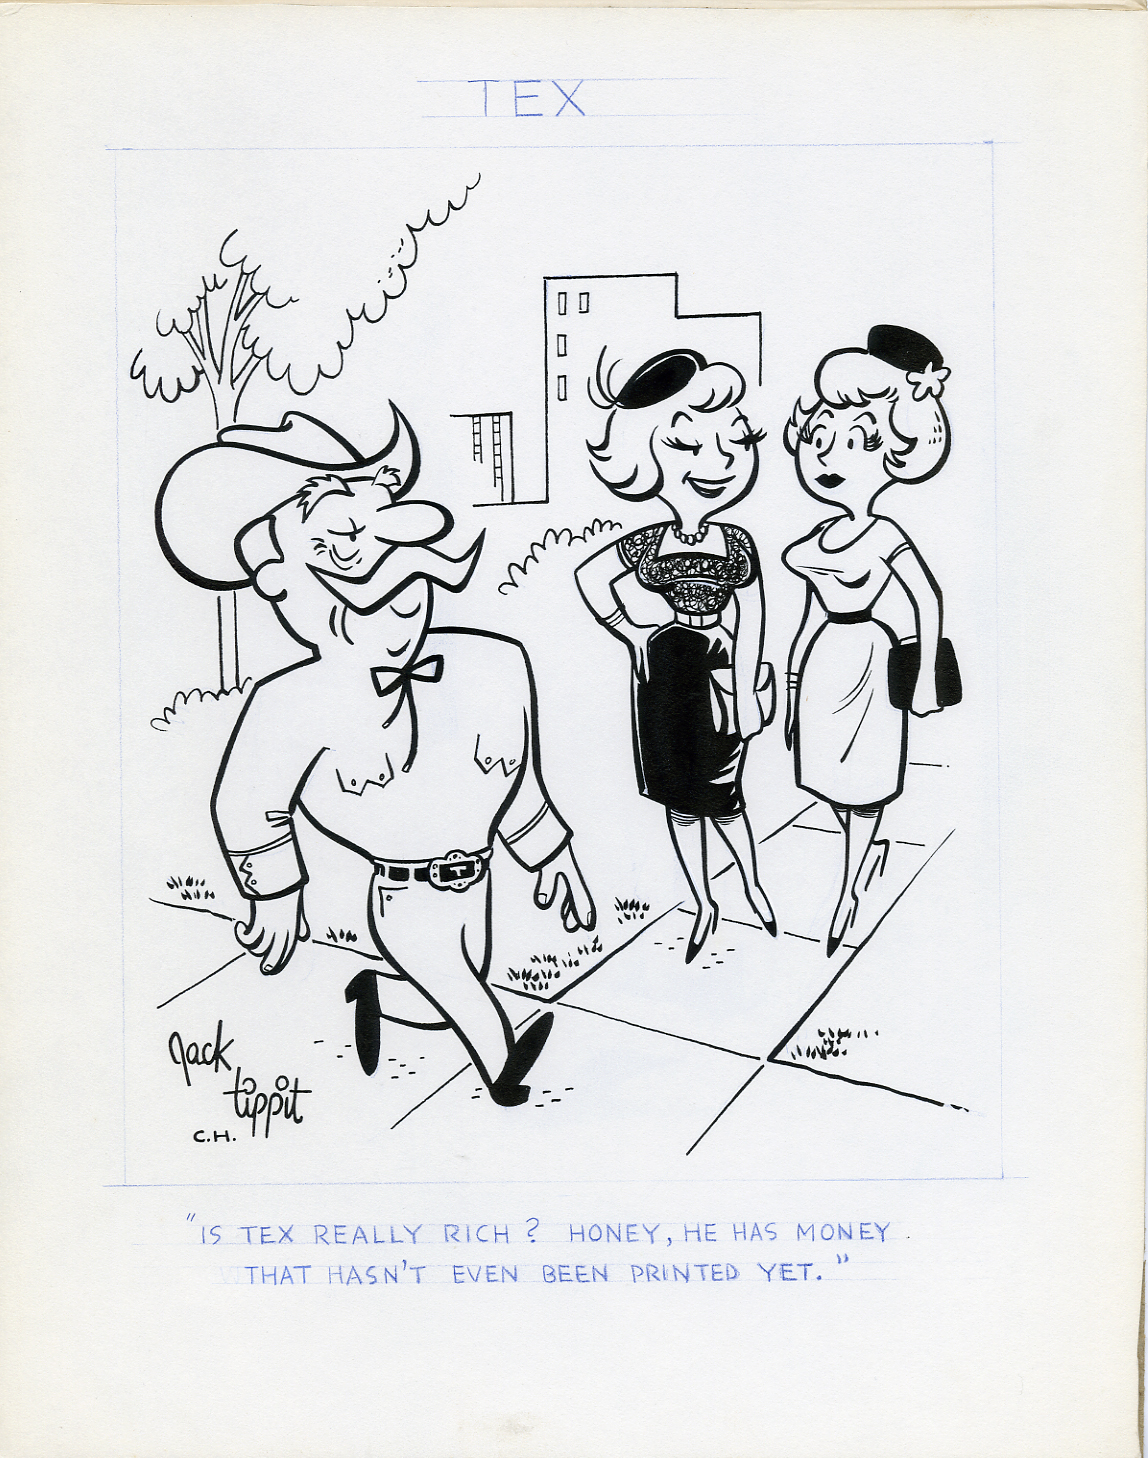 JACK TIPPIT - TEX DAILY STRIP 1970s HOW RICH IS TEX?